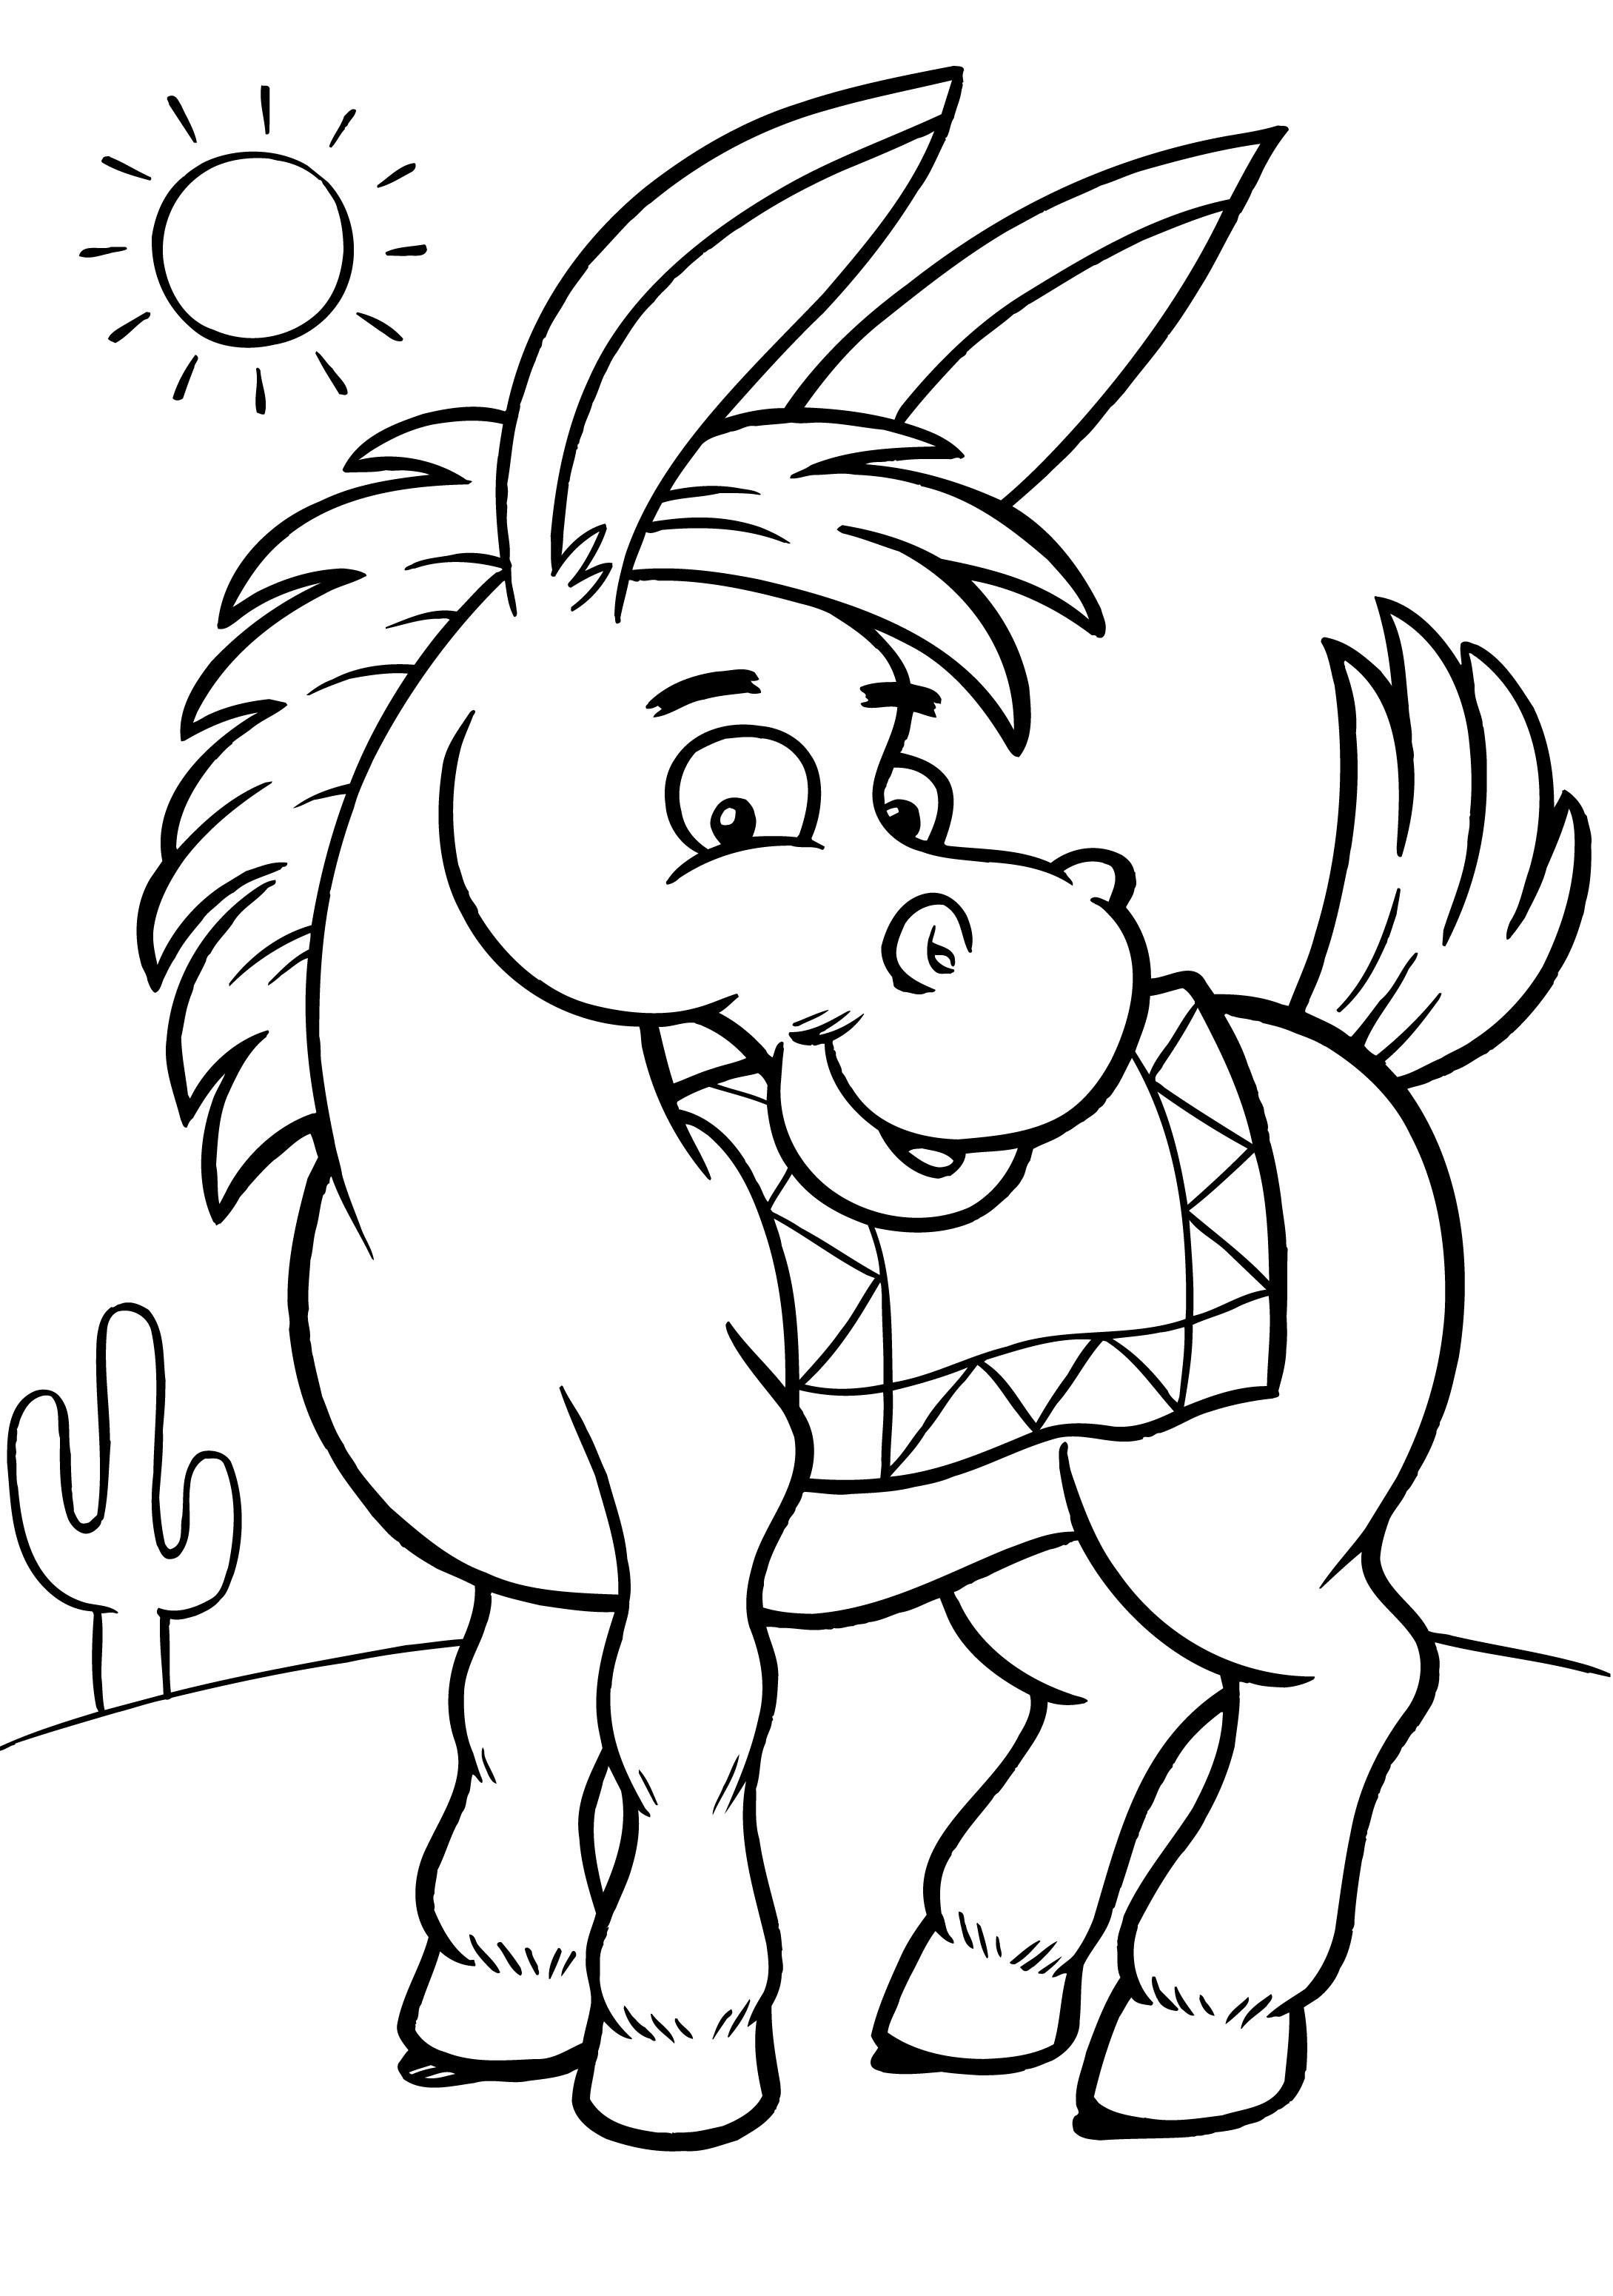 Coloring Book For Kids  Free Printable Donkey Coloring Pages For Kids